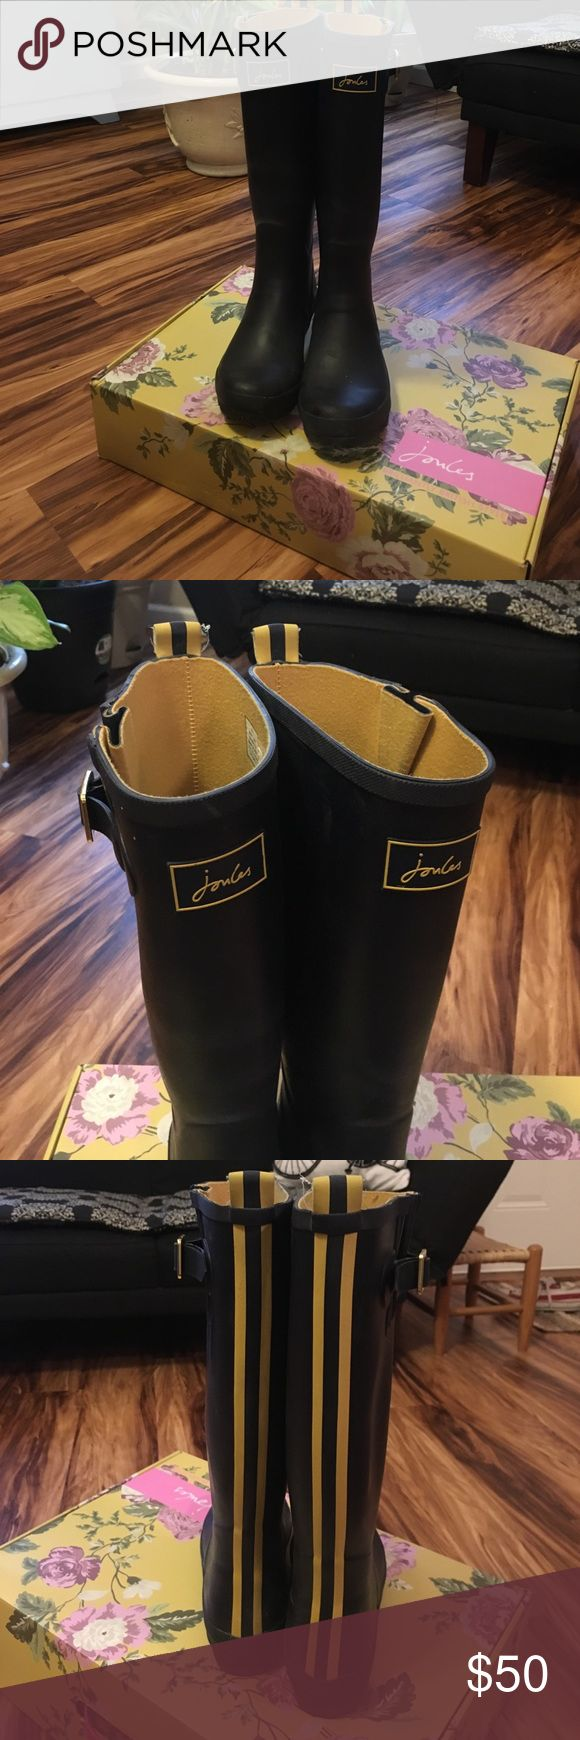 Joules navy and yellow rain boots Worn only a few times. Honestly too big for